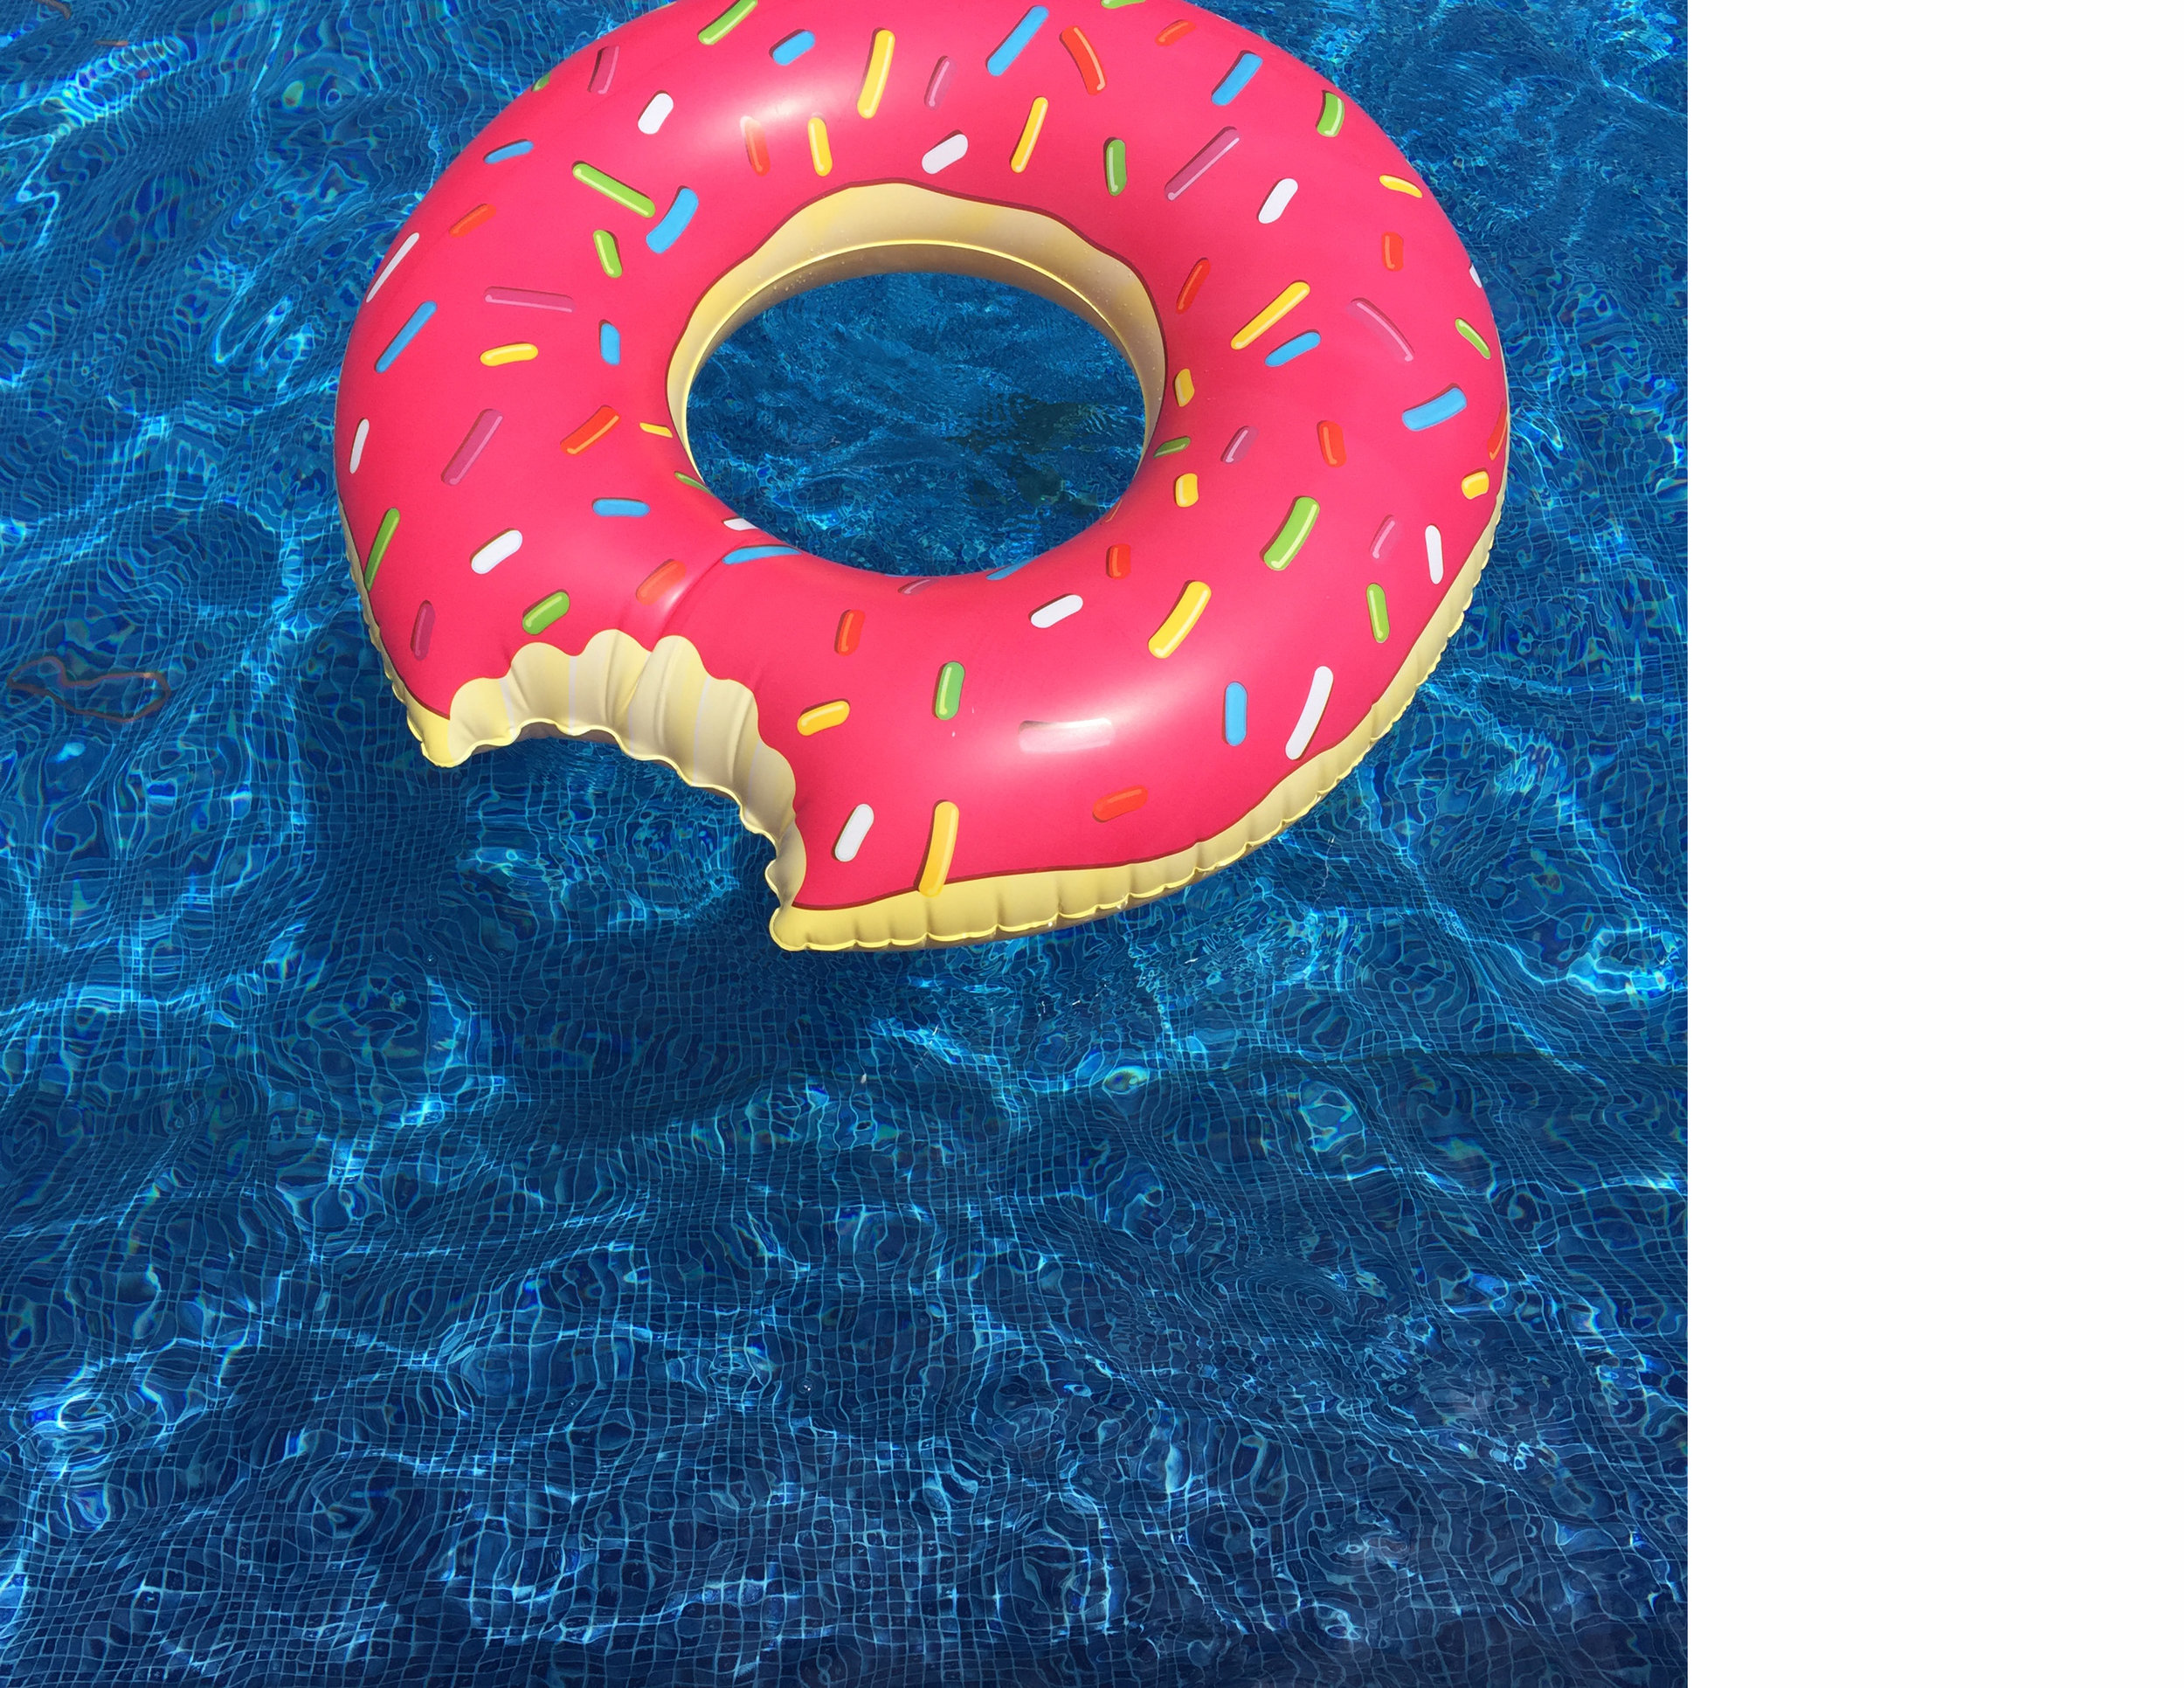 """Donut 22 x 22""""  Archival Pigment Print on Hahnemühle German Etching Fine Art Paper, 5"""" Border Rising Museum Acid Free Matting, Acrylite Non-glare UV Filtering Plexi-glass. White Painted Custom Frame.  $400    Pieces Made to Custom Order*"""